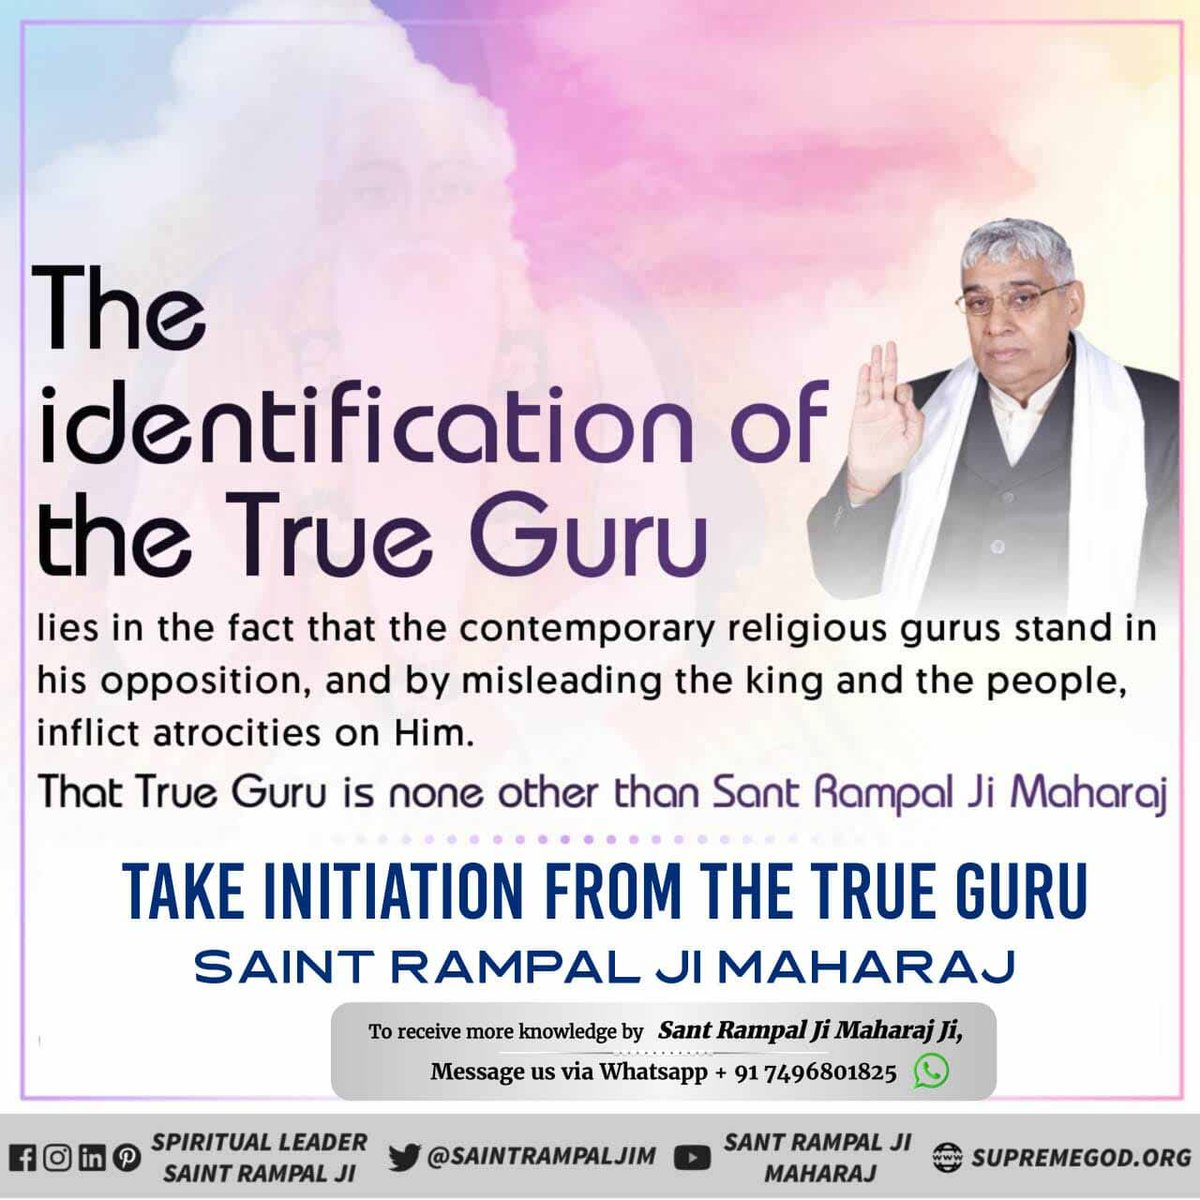 #GuruPurnima Satguru creates a clean society with his true knowledge. A hypocritical, drug-free, dowry-free, corruption-free society is being prepared under the leadership of Sant Rampal Ji Maharaj. #JagatGuru_SaintRampalJipic.twitter.com/ahMeTTk30y